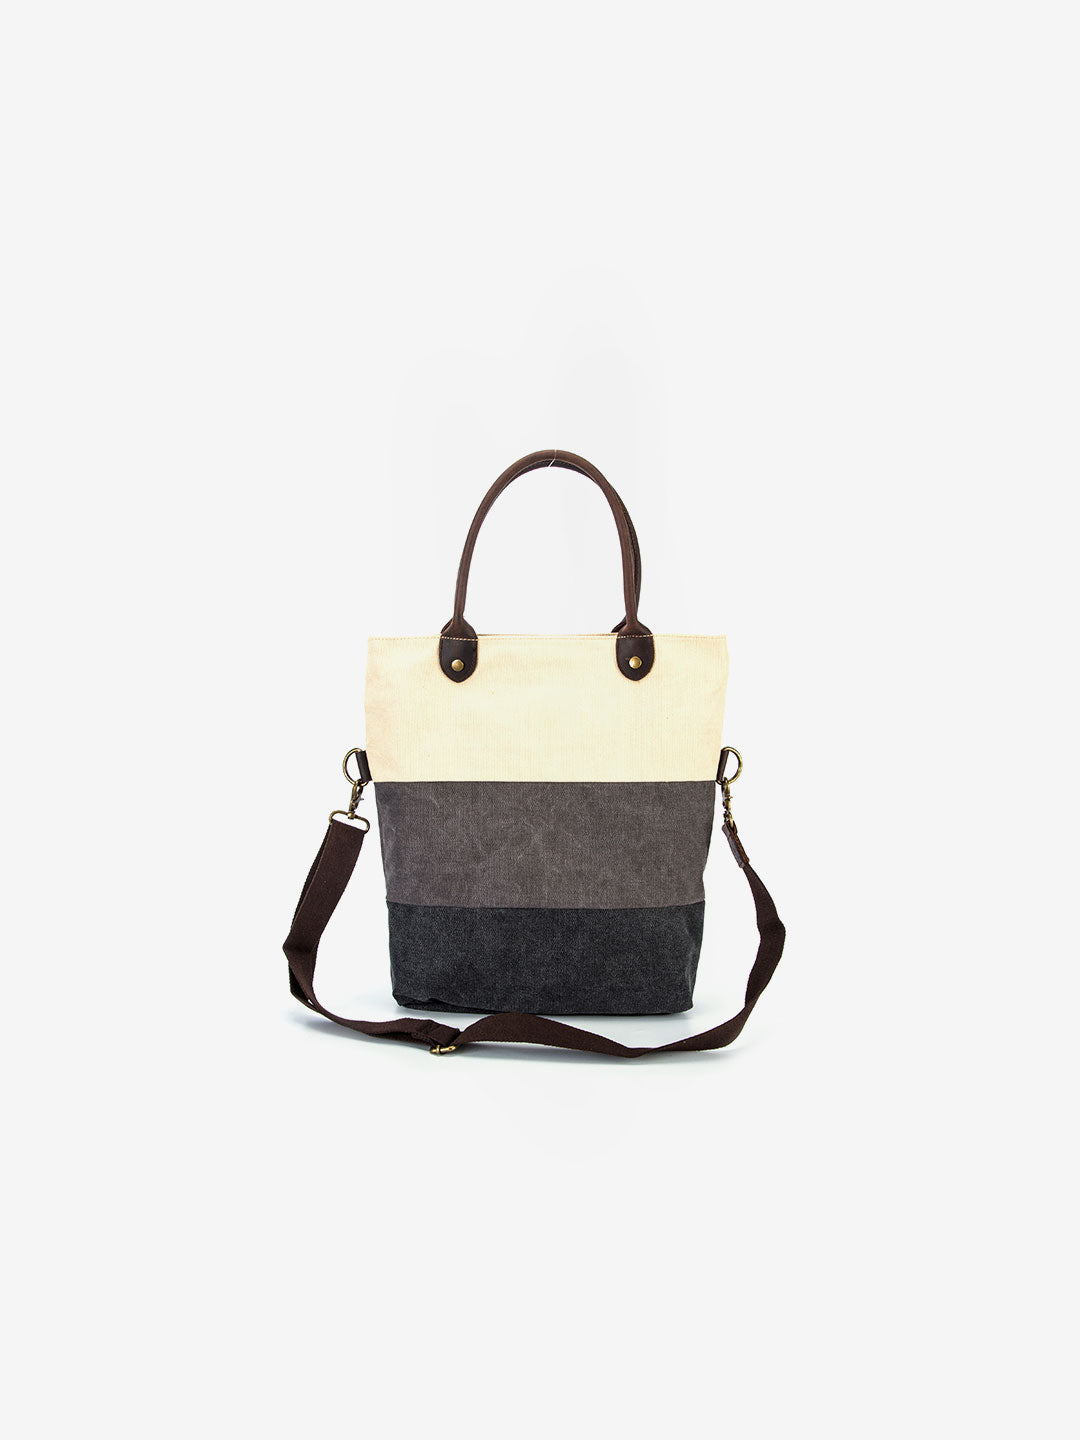 The Tribeca Tote in Pearl